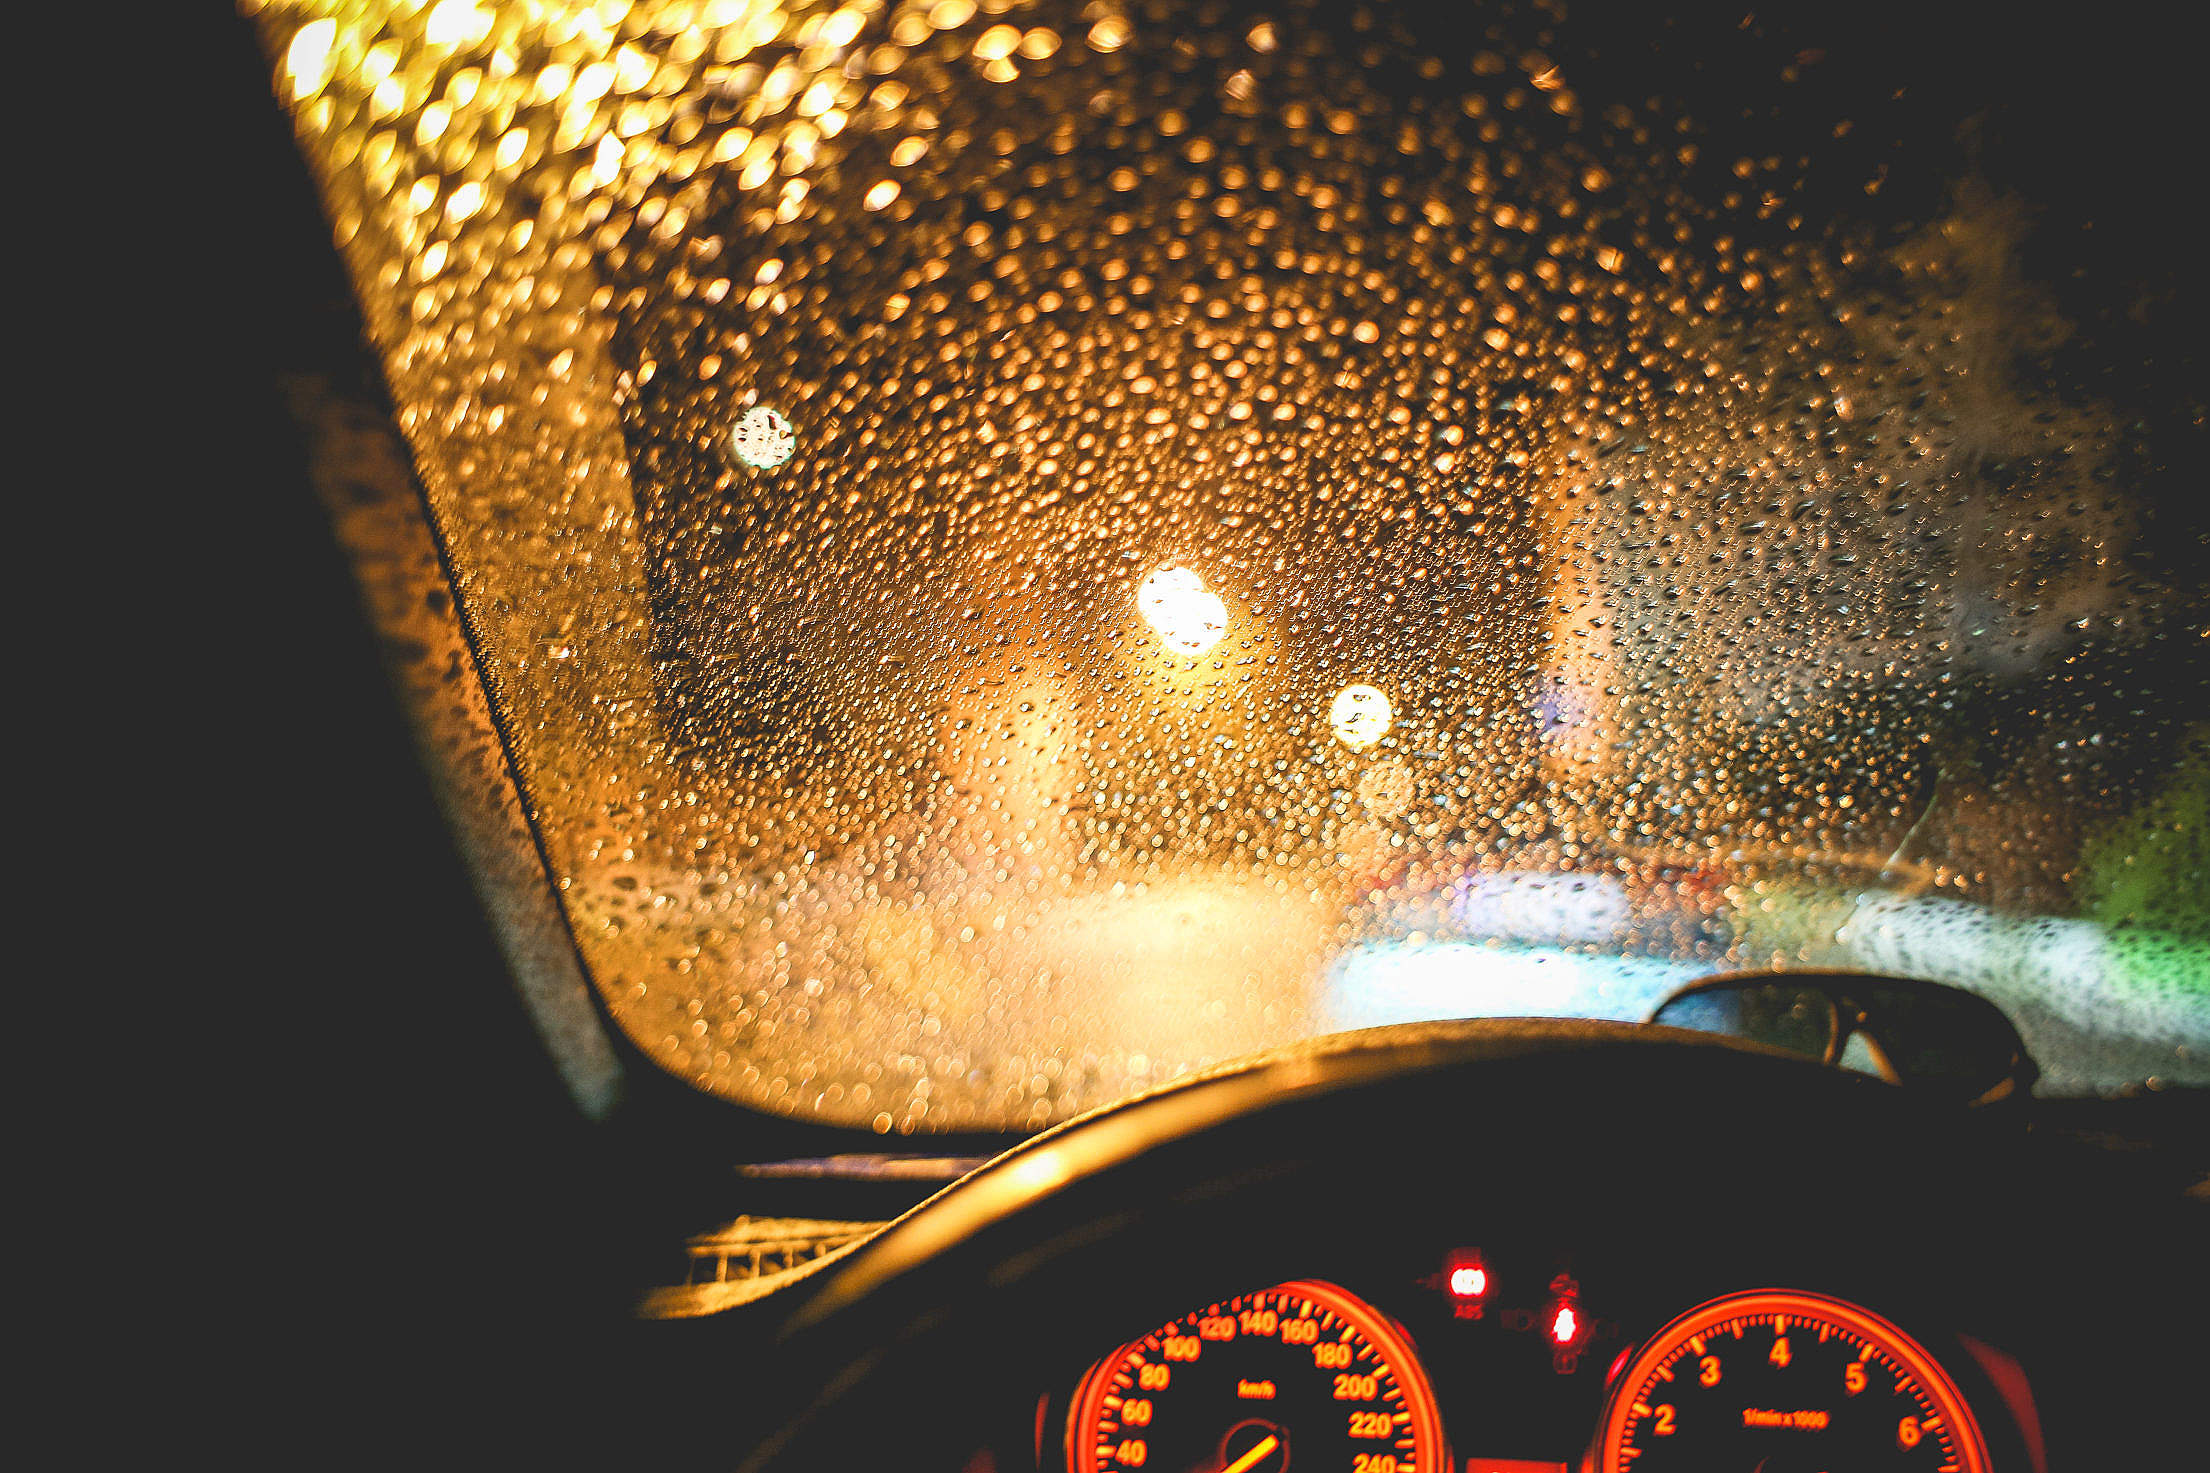 Rainy View From The Car At Night Free Stock Photo